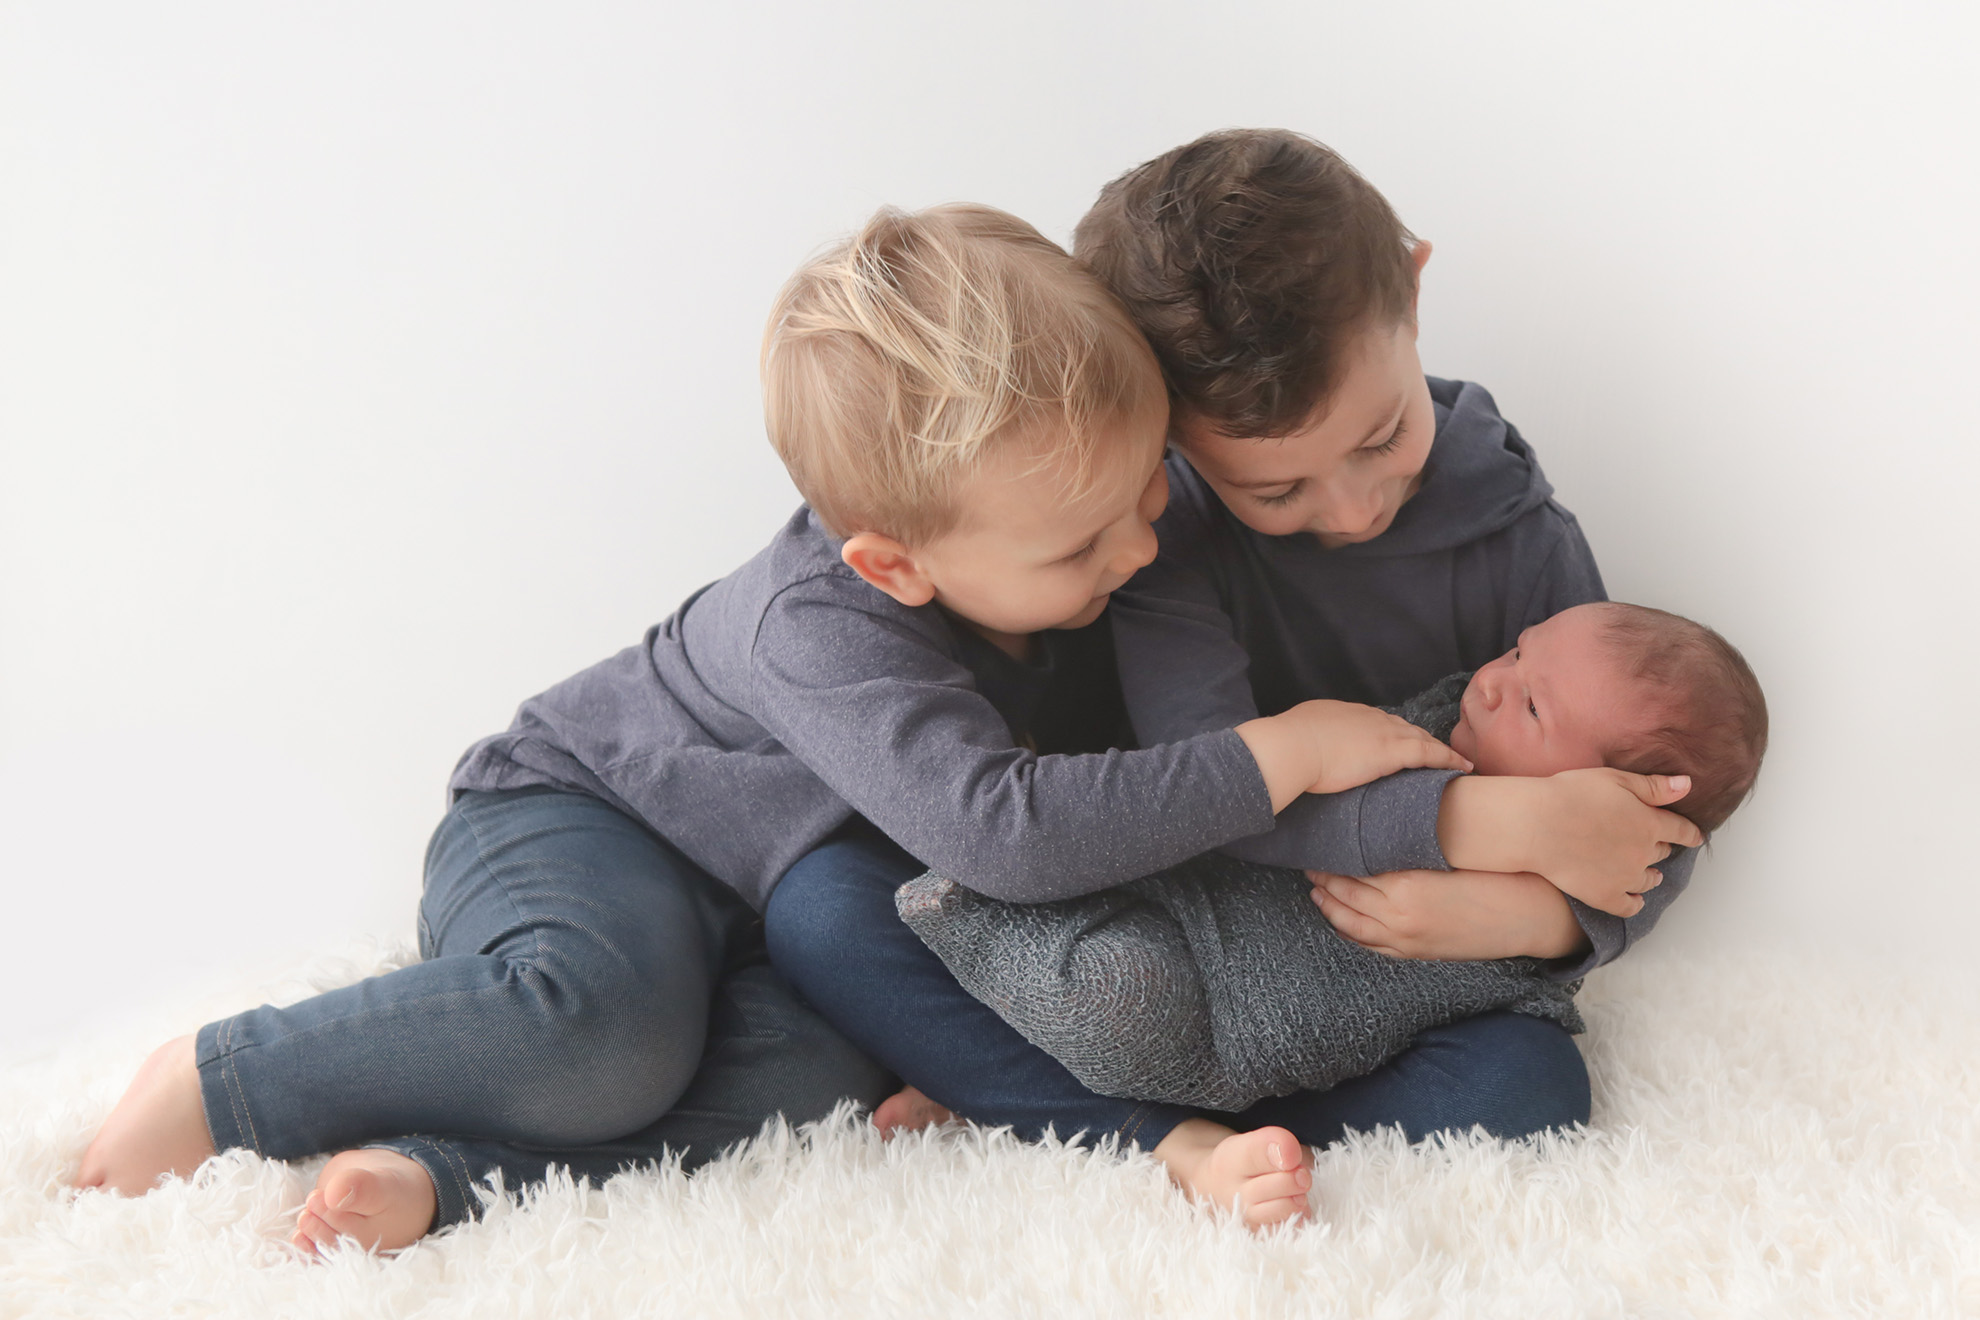 Newborn-baby-and-siblings-photography.jpg